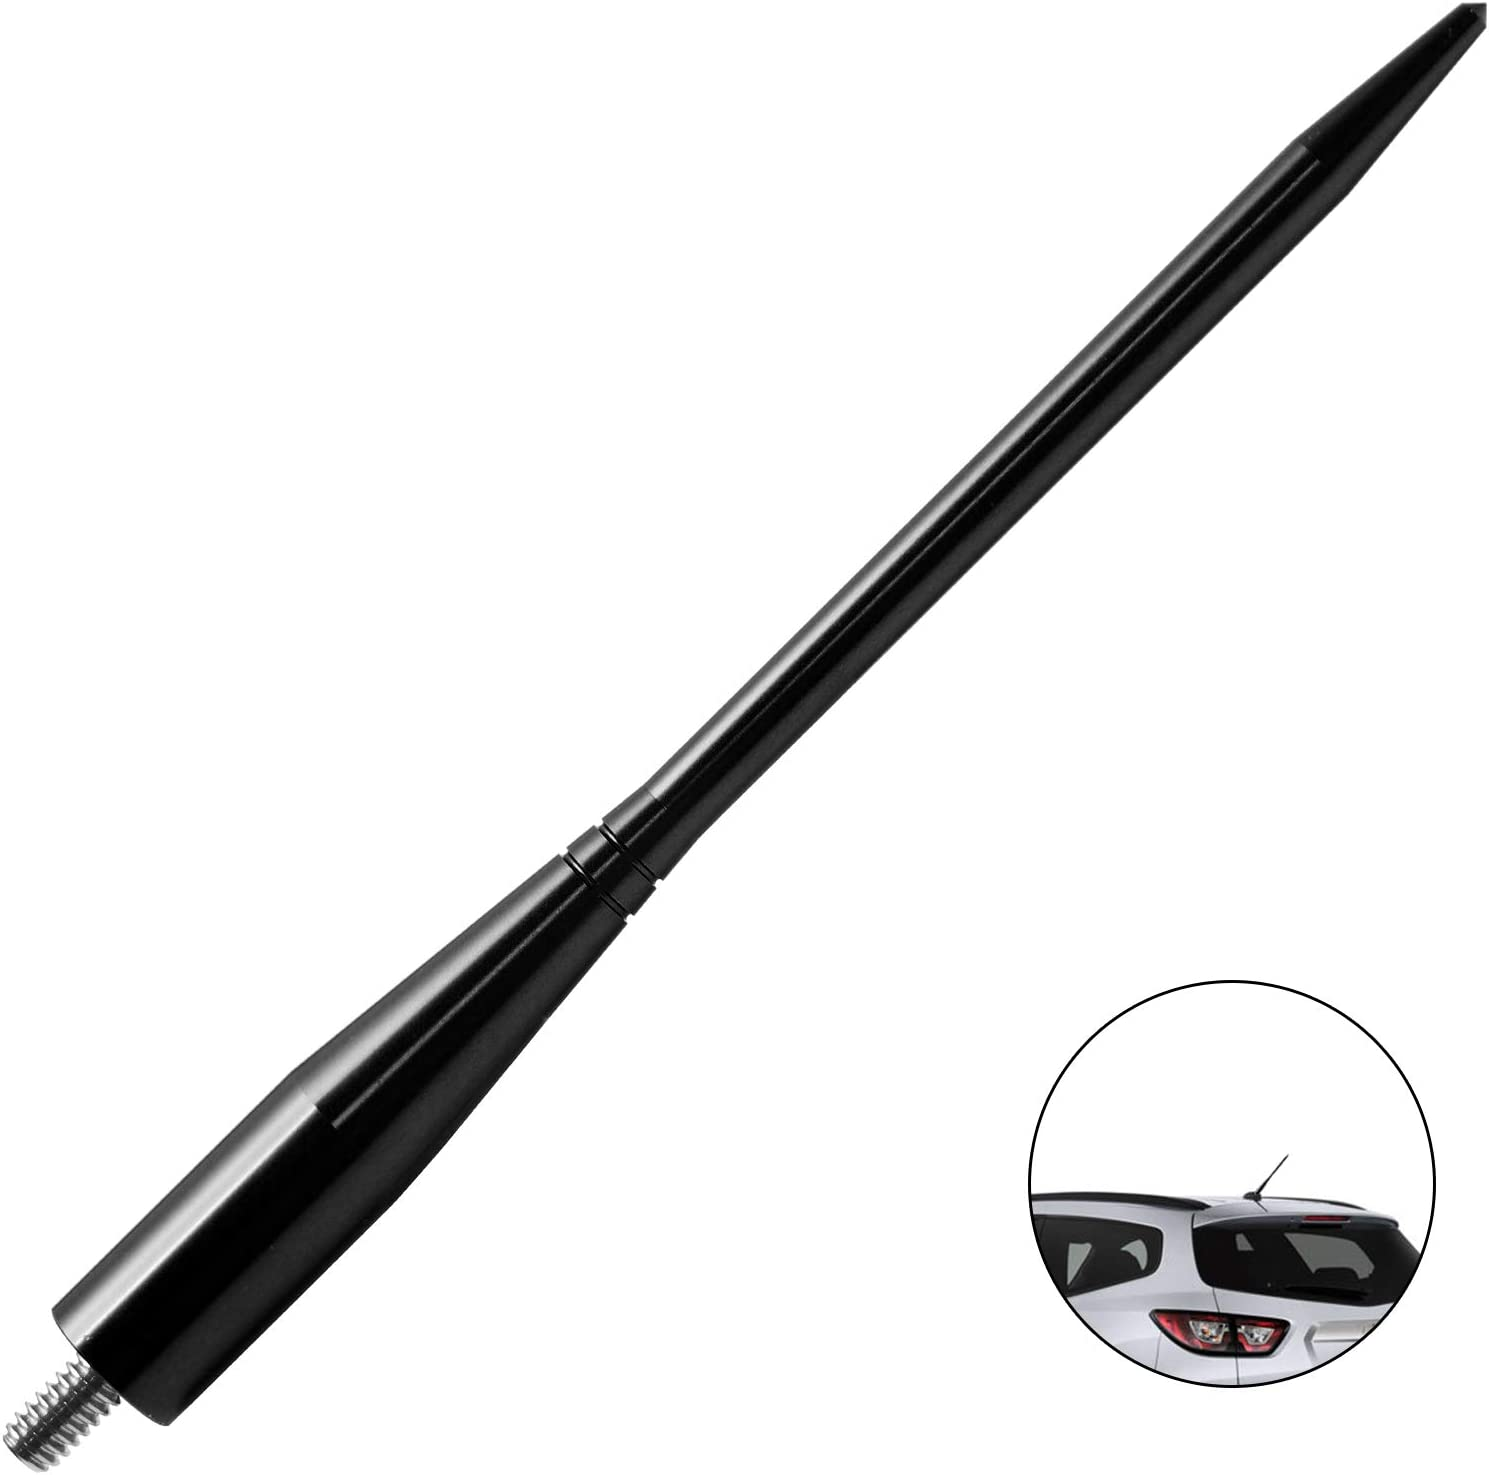 6.75 inches-Black JAPower Replacement Antenna Compatible with Toyota Sienna 2003-2014